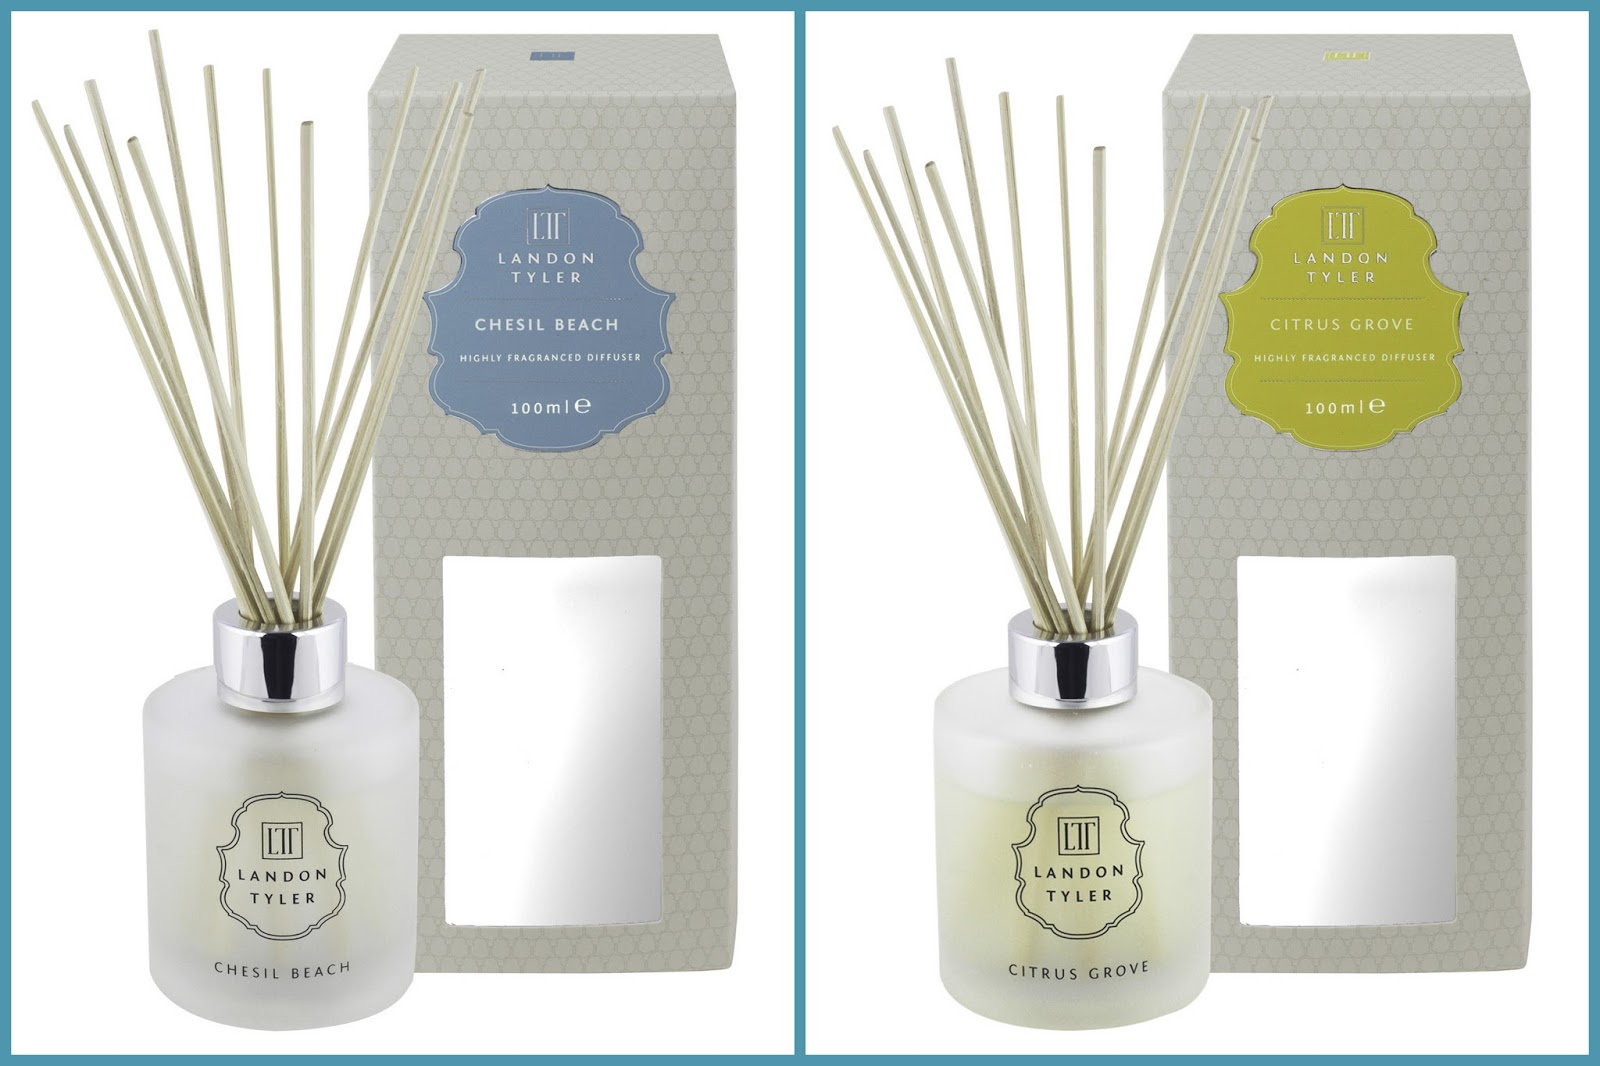 Landon Tyler Luxury Diffusers